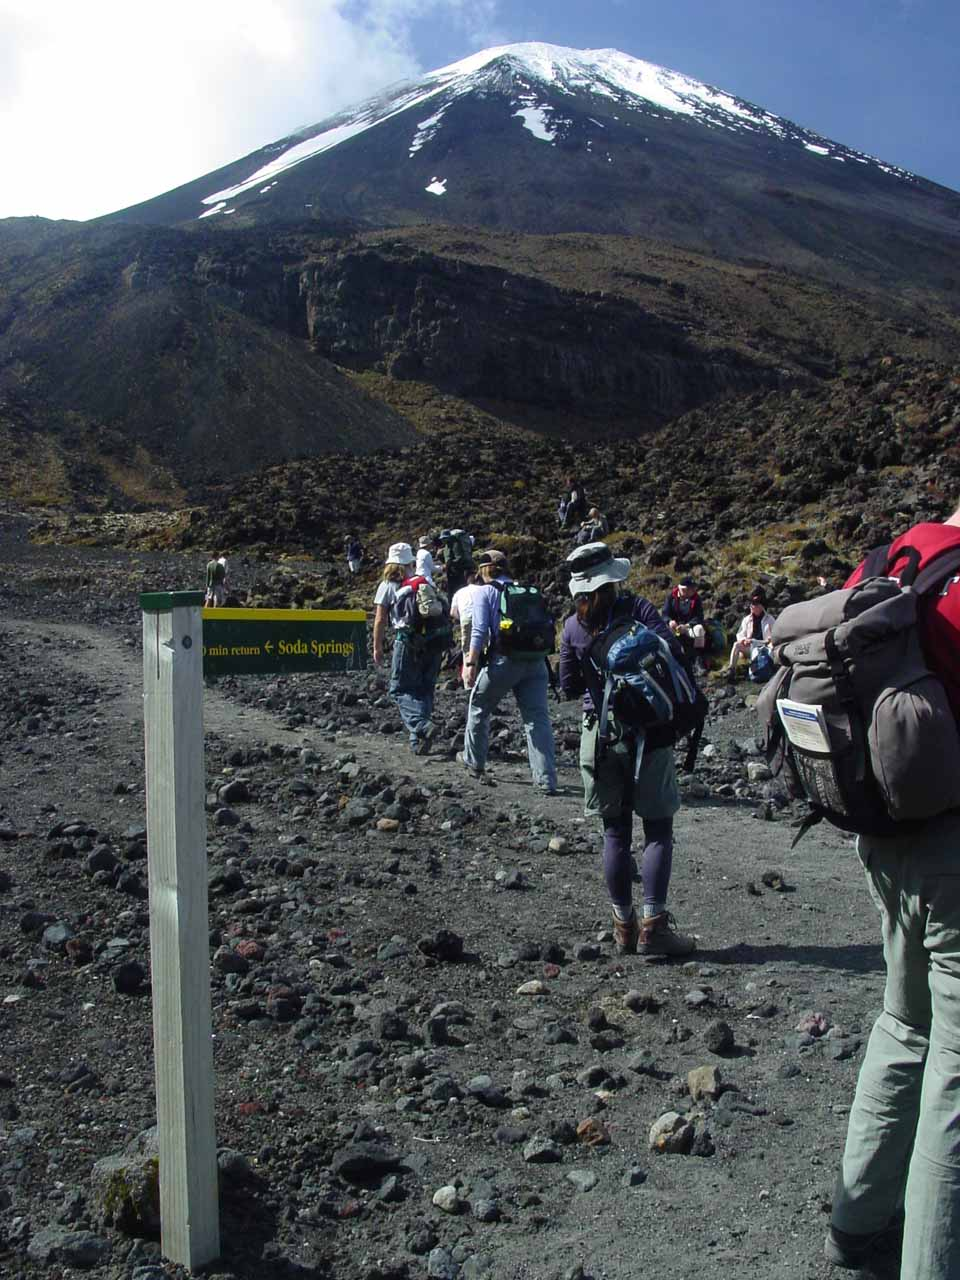 Julie amongst the crowd of people going up amongst the volcanos of Tongariro Crossing